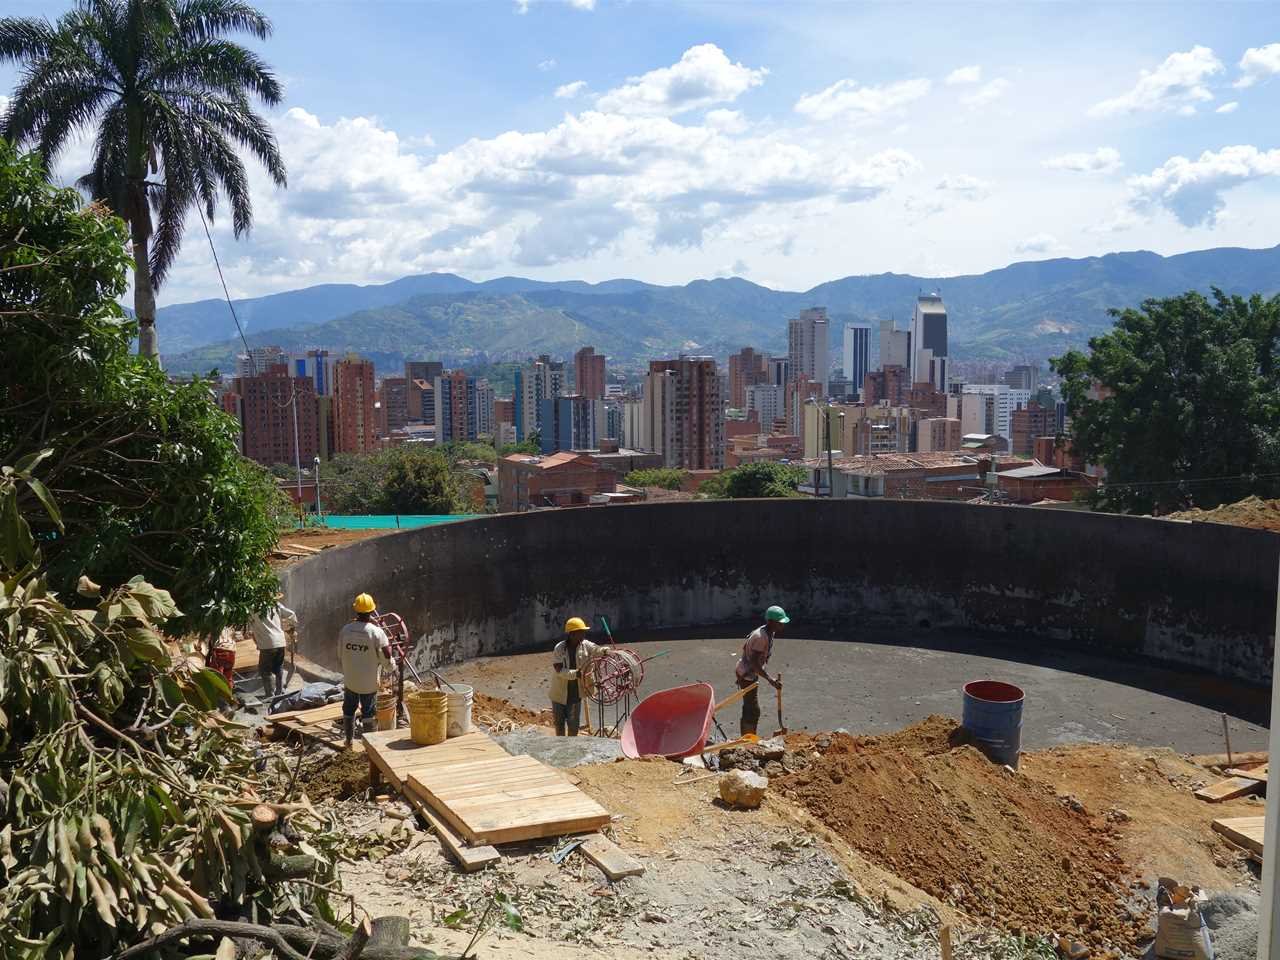 Project update April 2015 – Articulated Site: Water reservoirs as public park, Medellín, Colombia